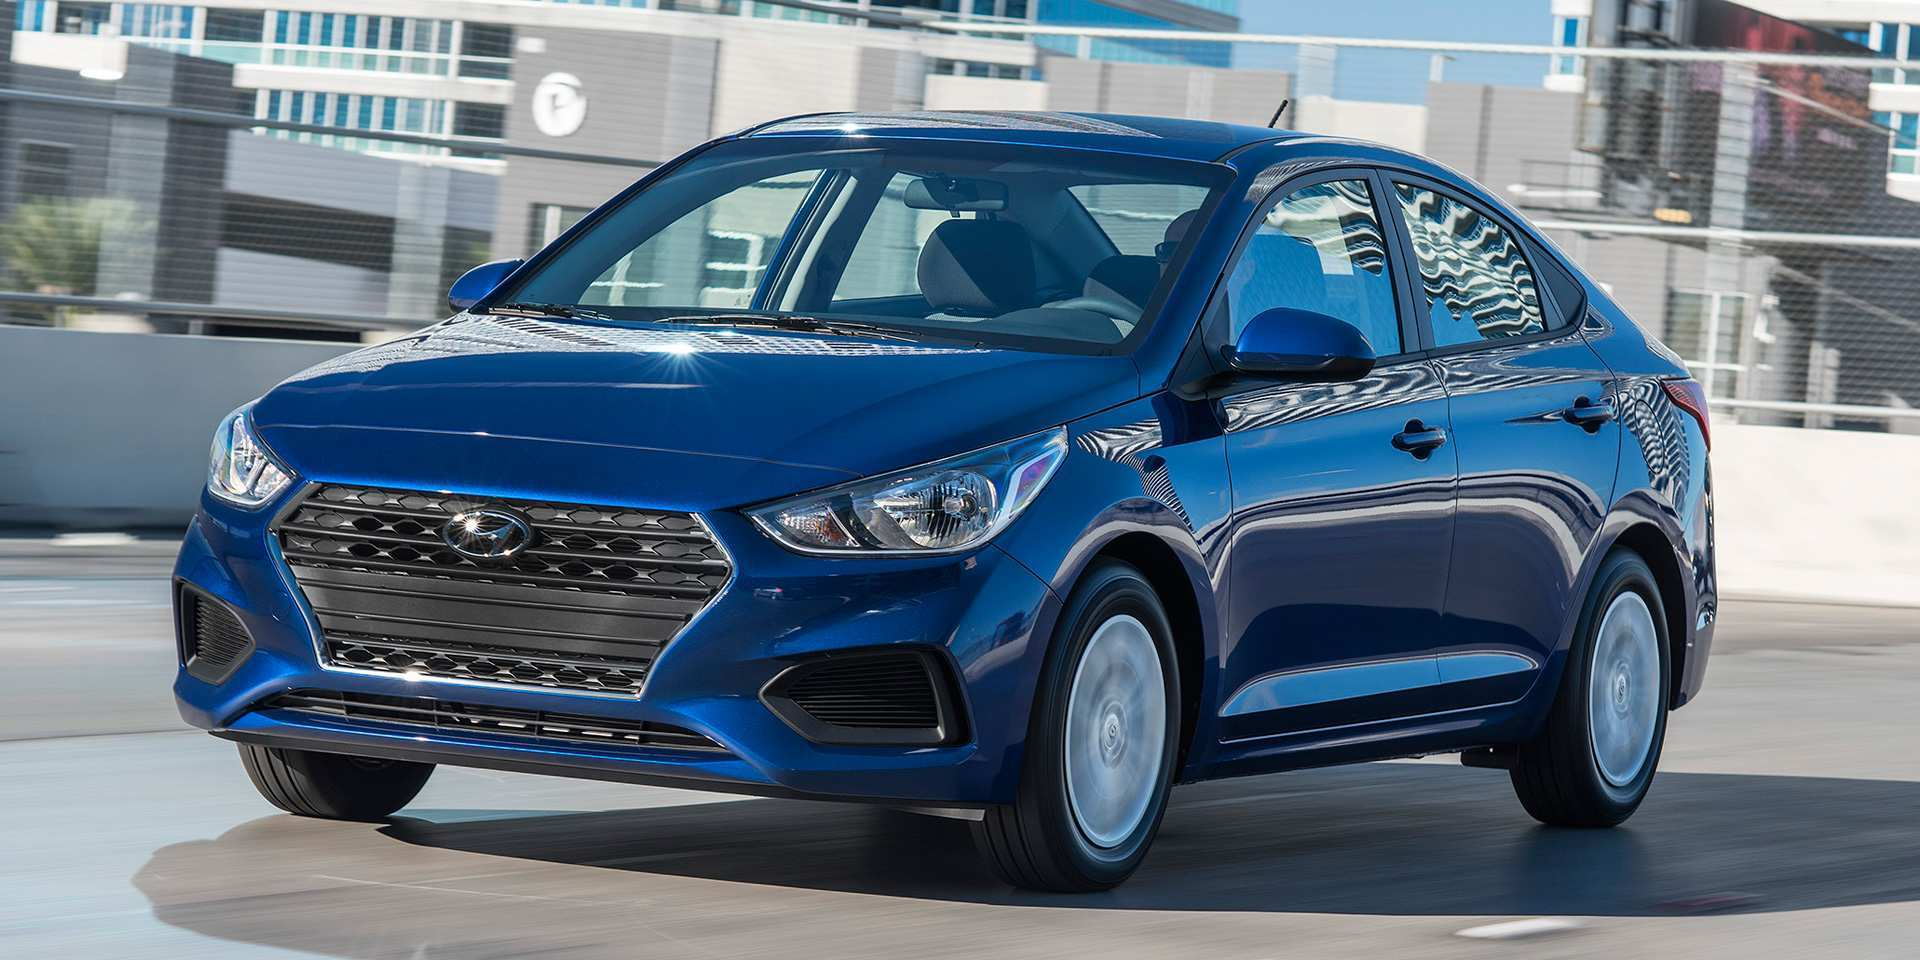 72 All New 2019 Hyundai Accent Exterior And Interior